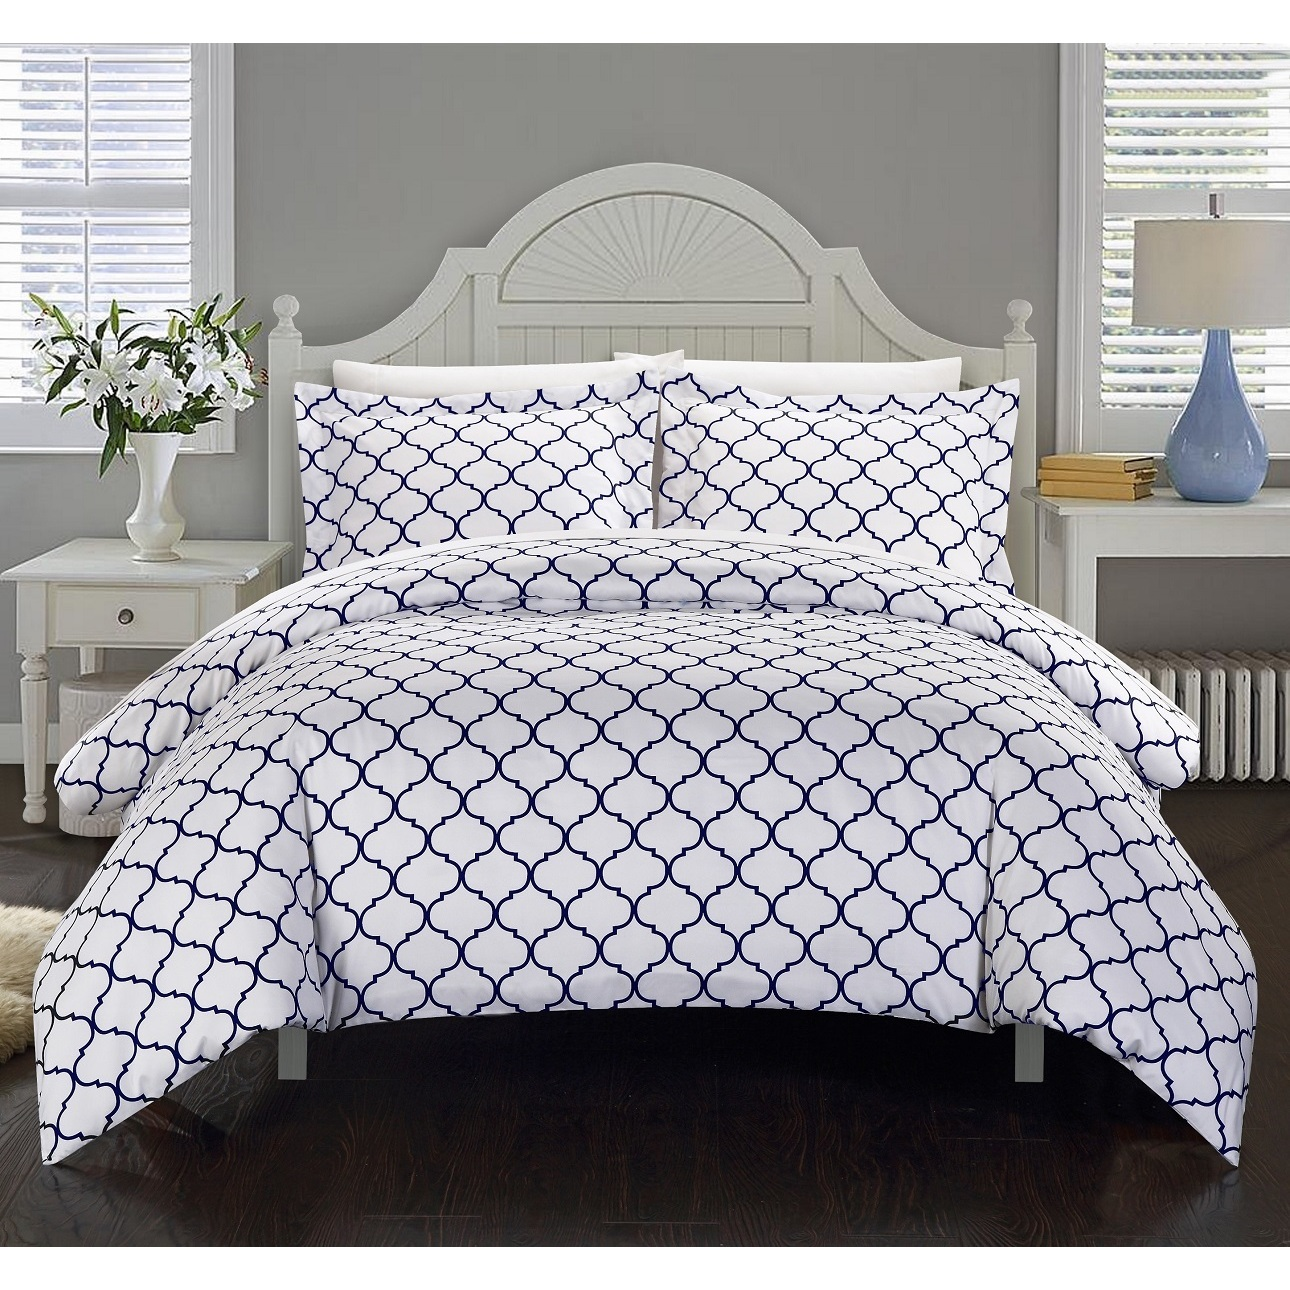 Chic Home Finlay Navy 9-Piece Bed in a Bag Duvet Cover with Sheet Set